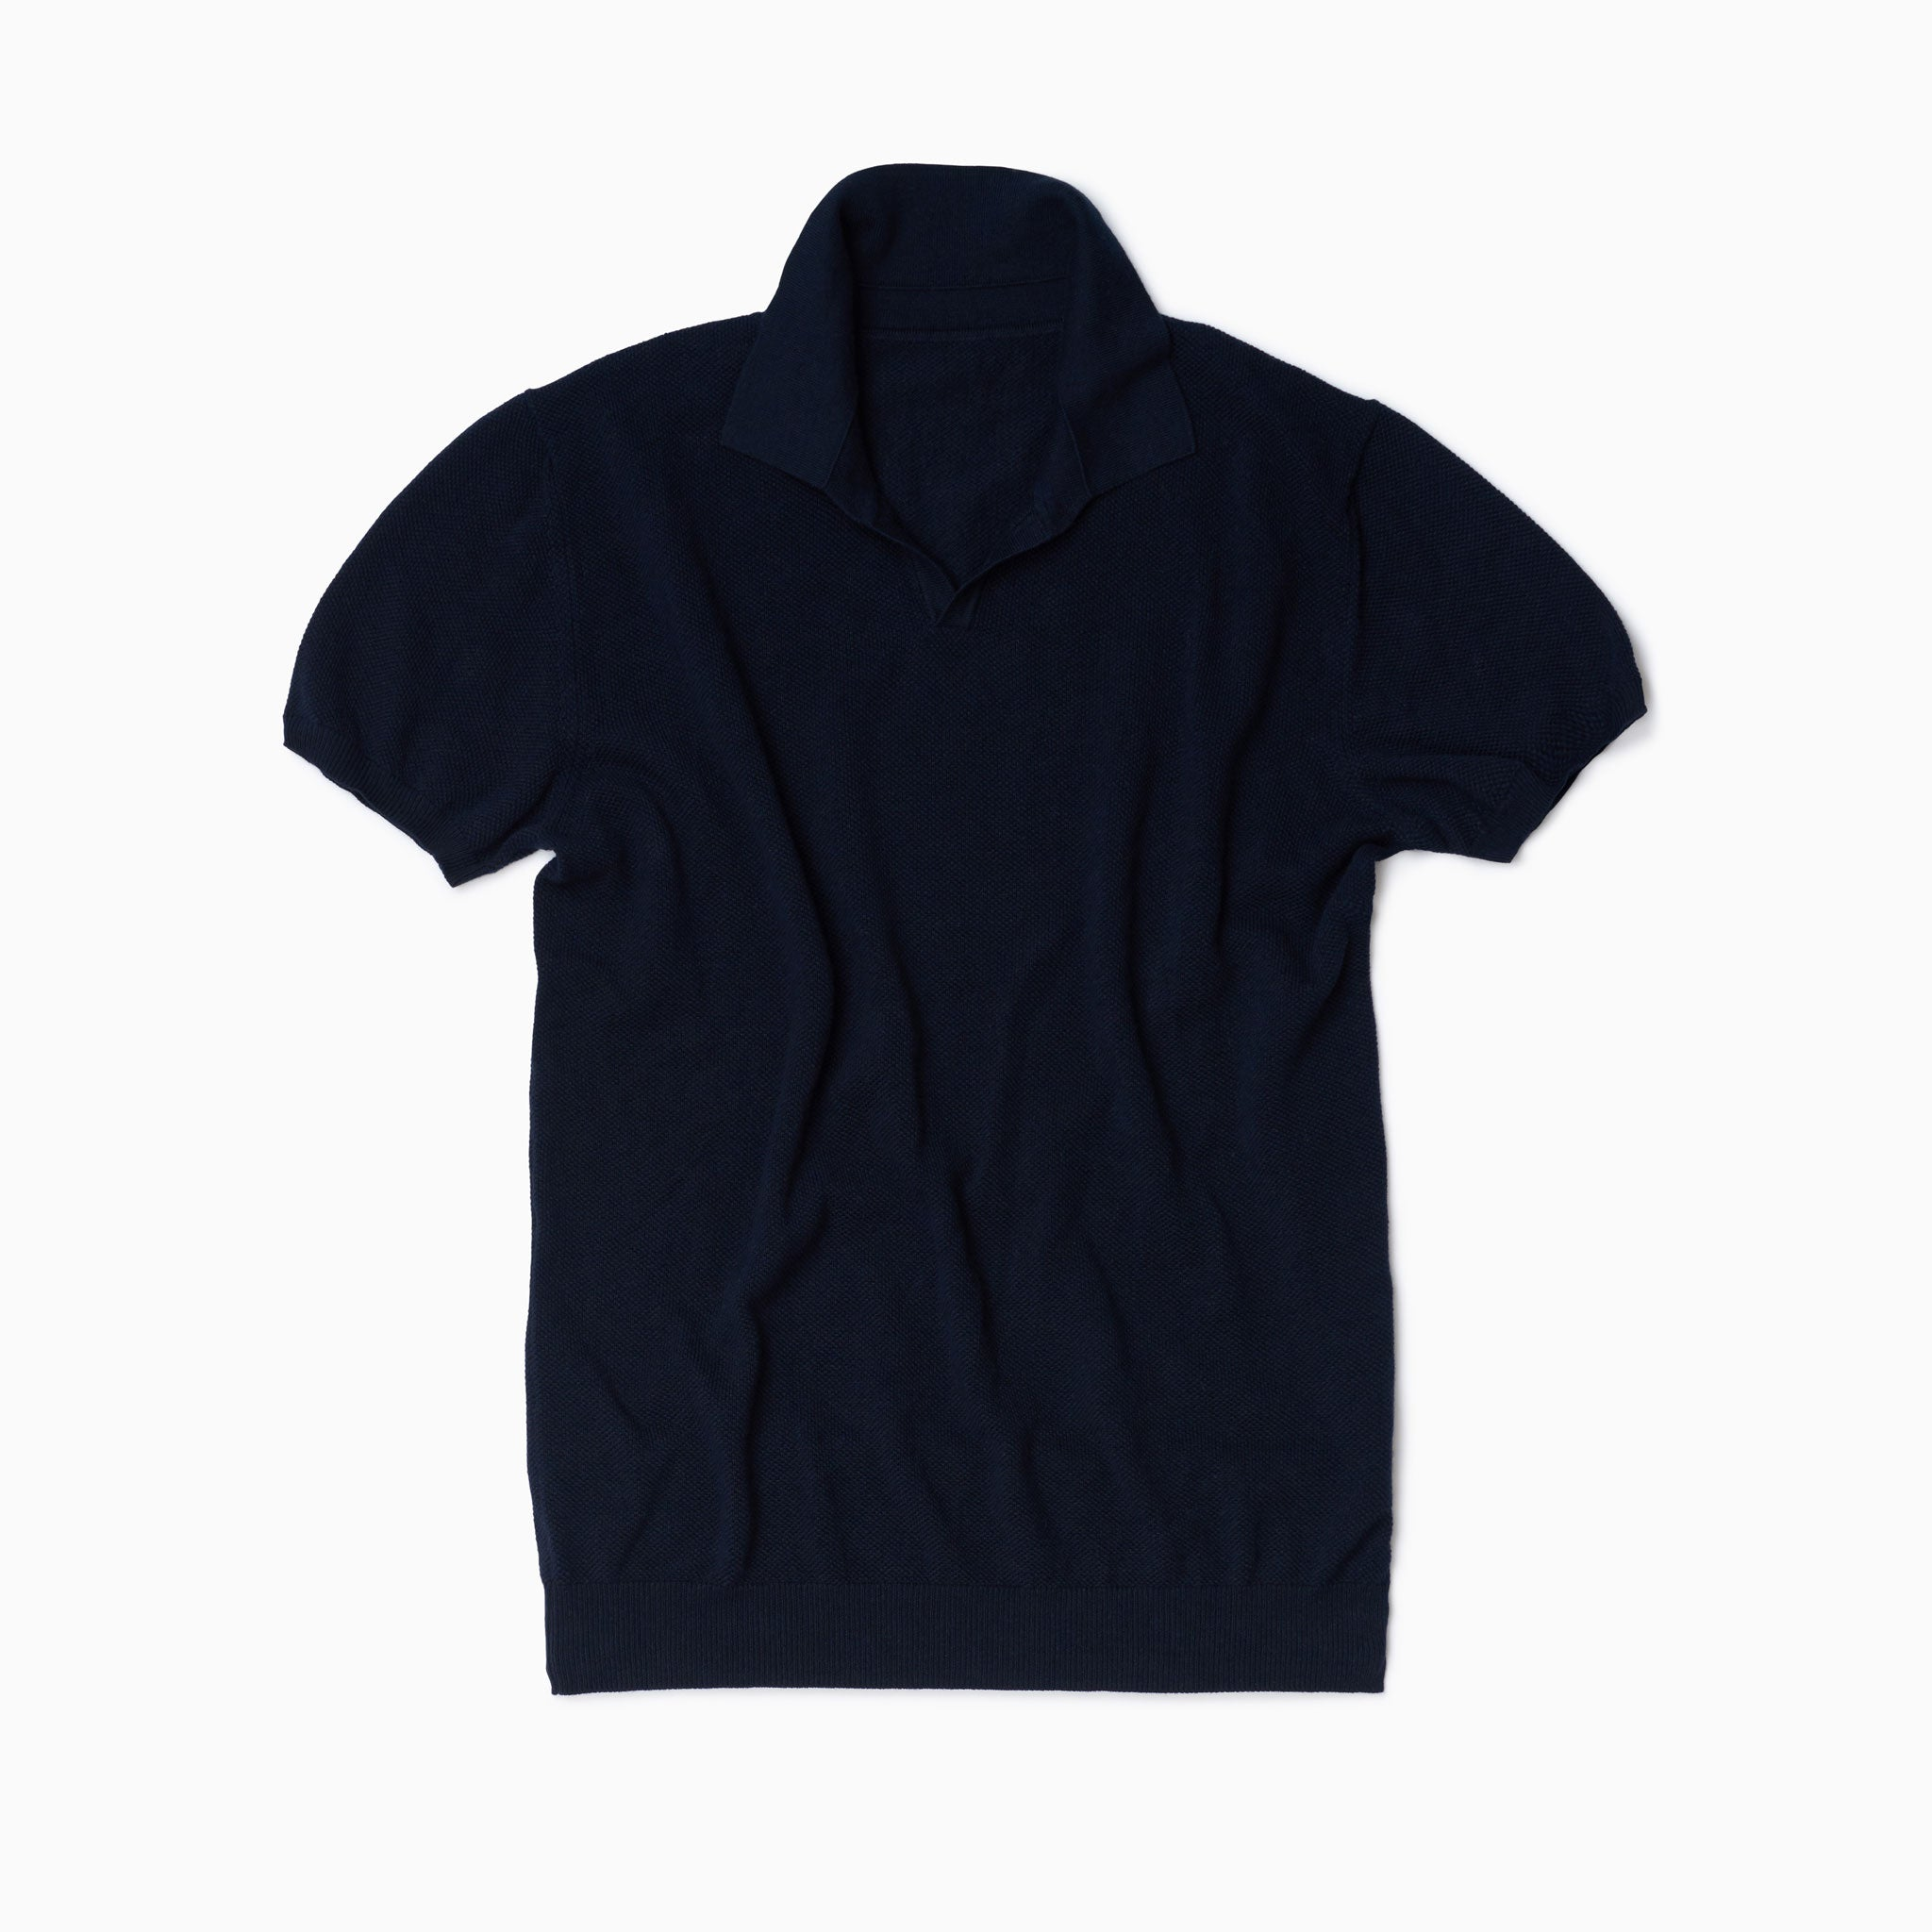 Navy Cotton Honeycomb Short Sleeve Polo